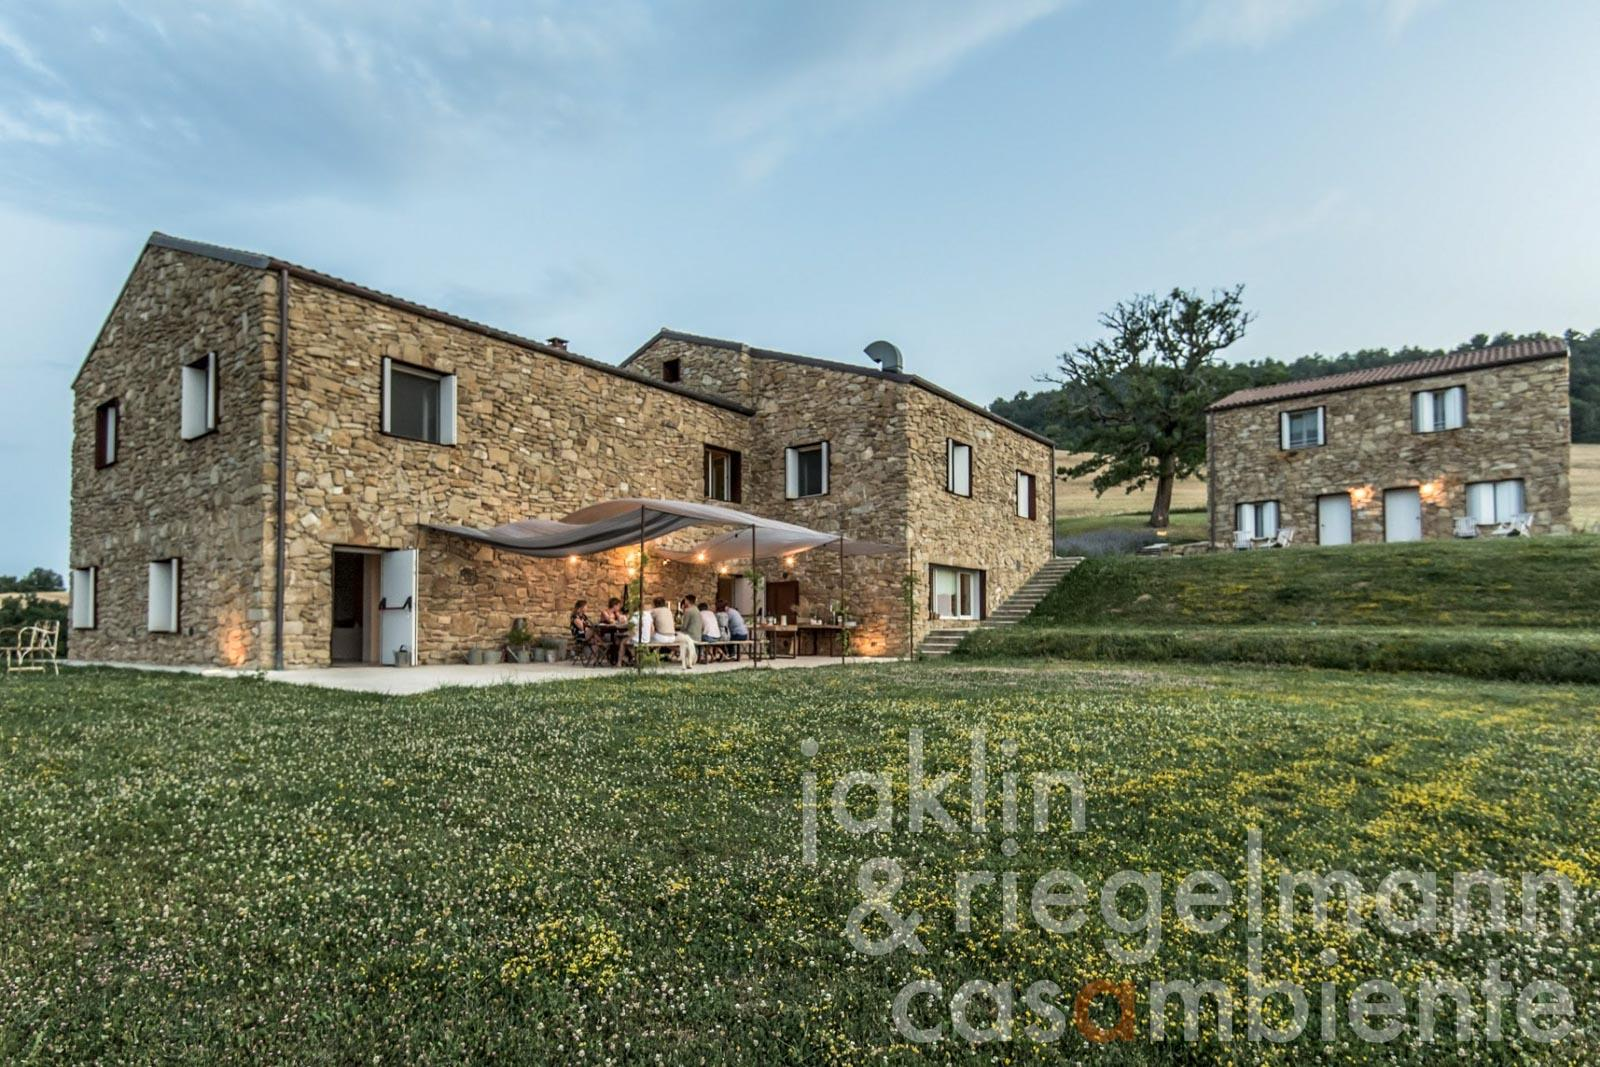 Small luxury boutique hotel with wellness area in the beautiful Marche hills